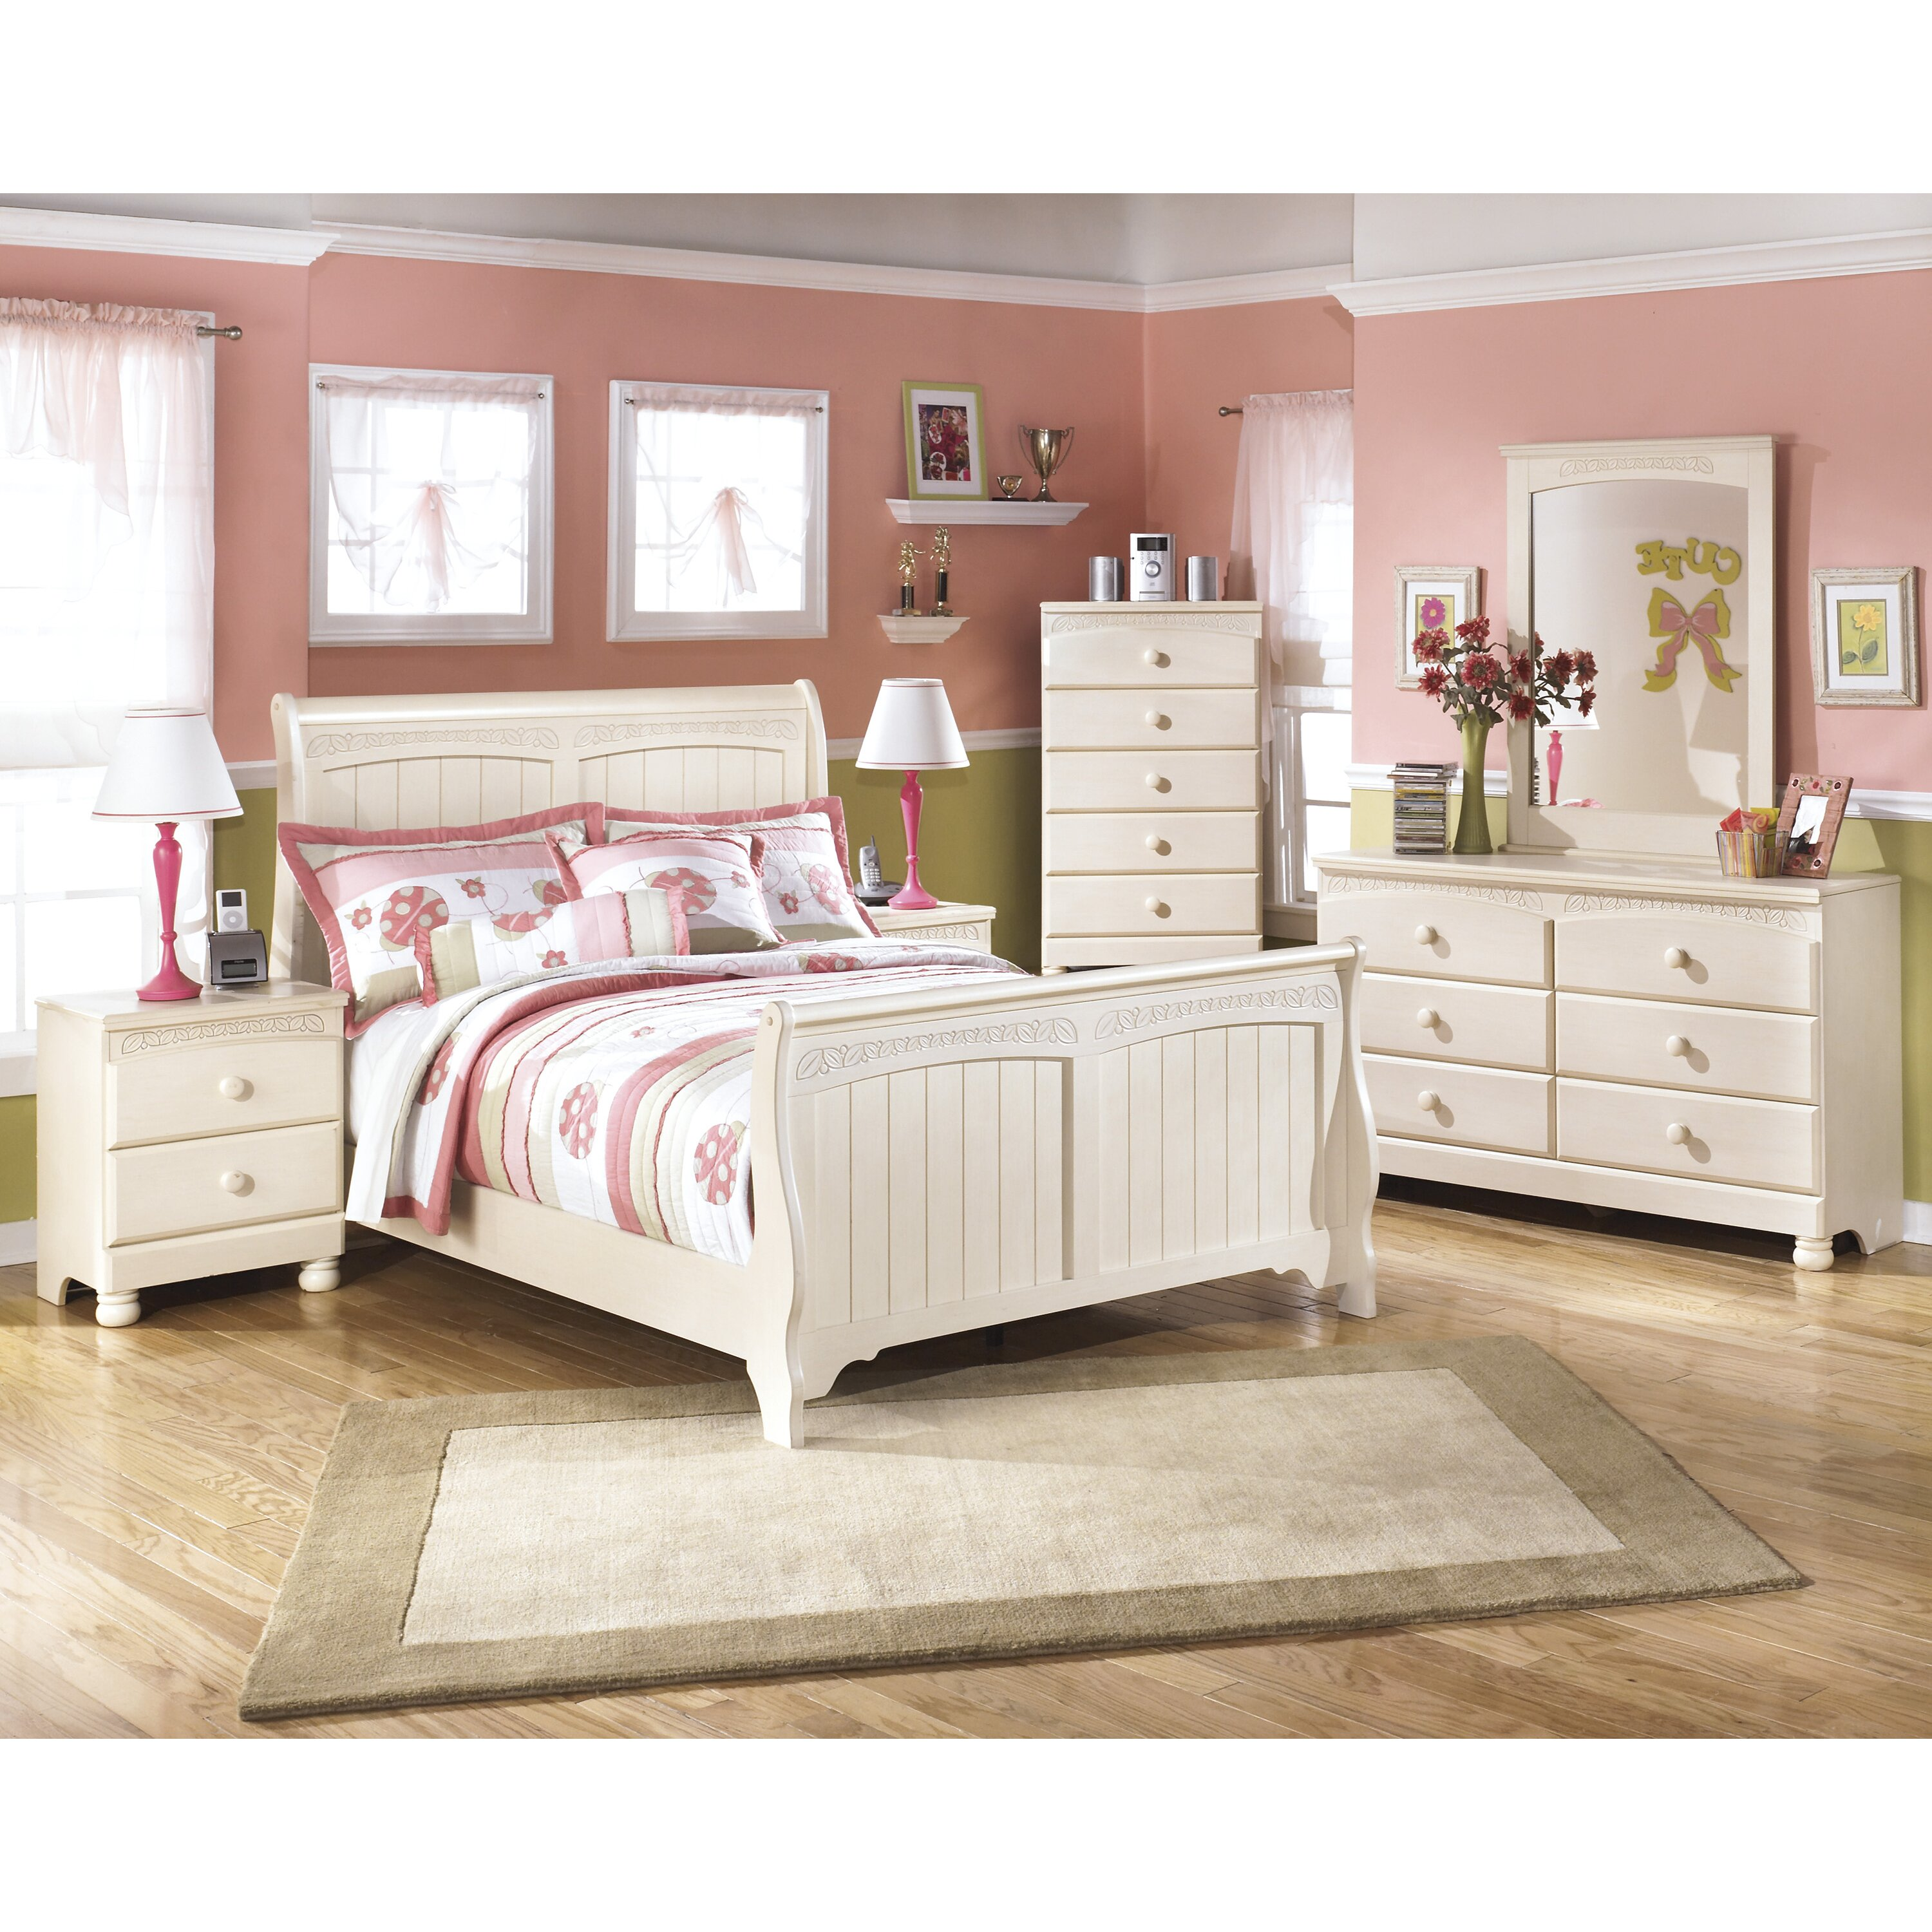 Ashley Furniture Fayetteville: Signature Design By Ashley Cottage Retreat 5 Drawer Chest